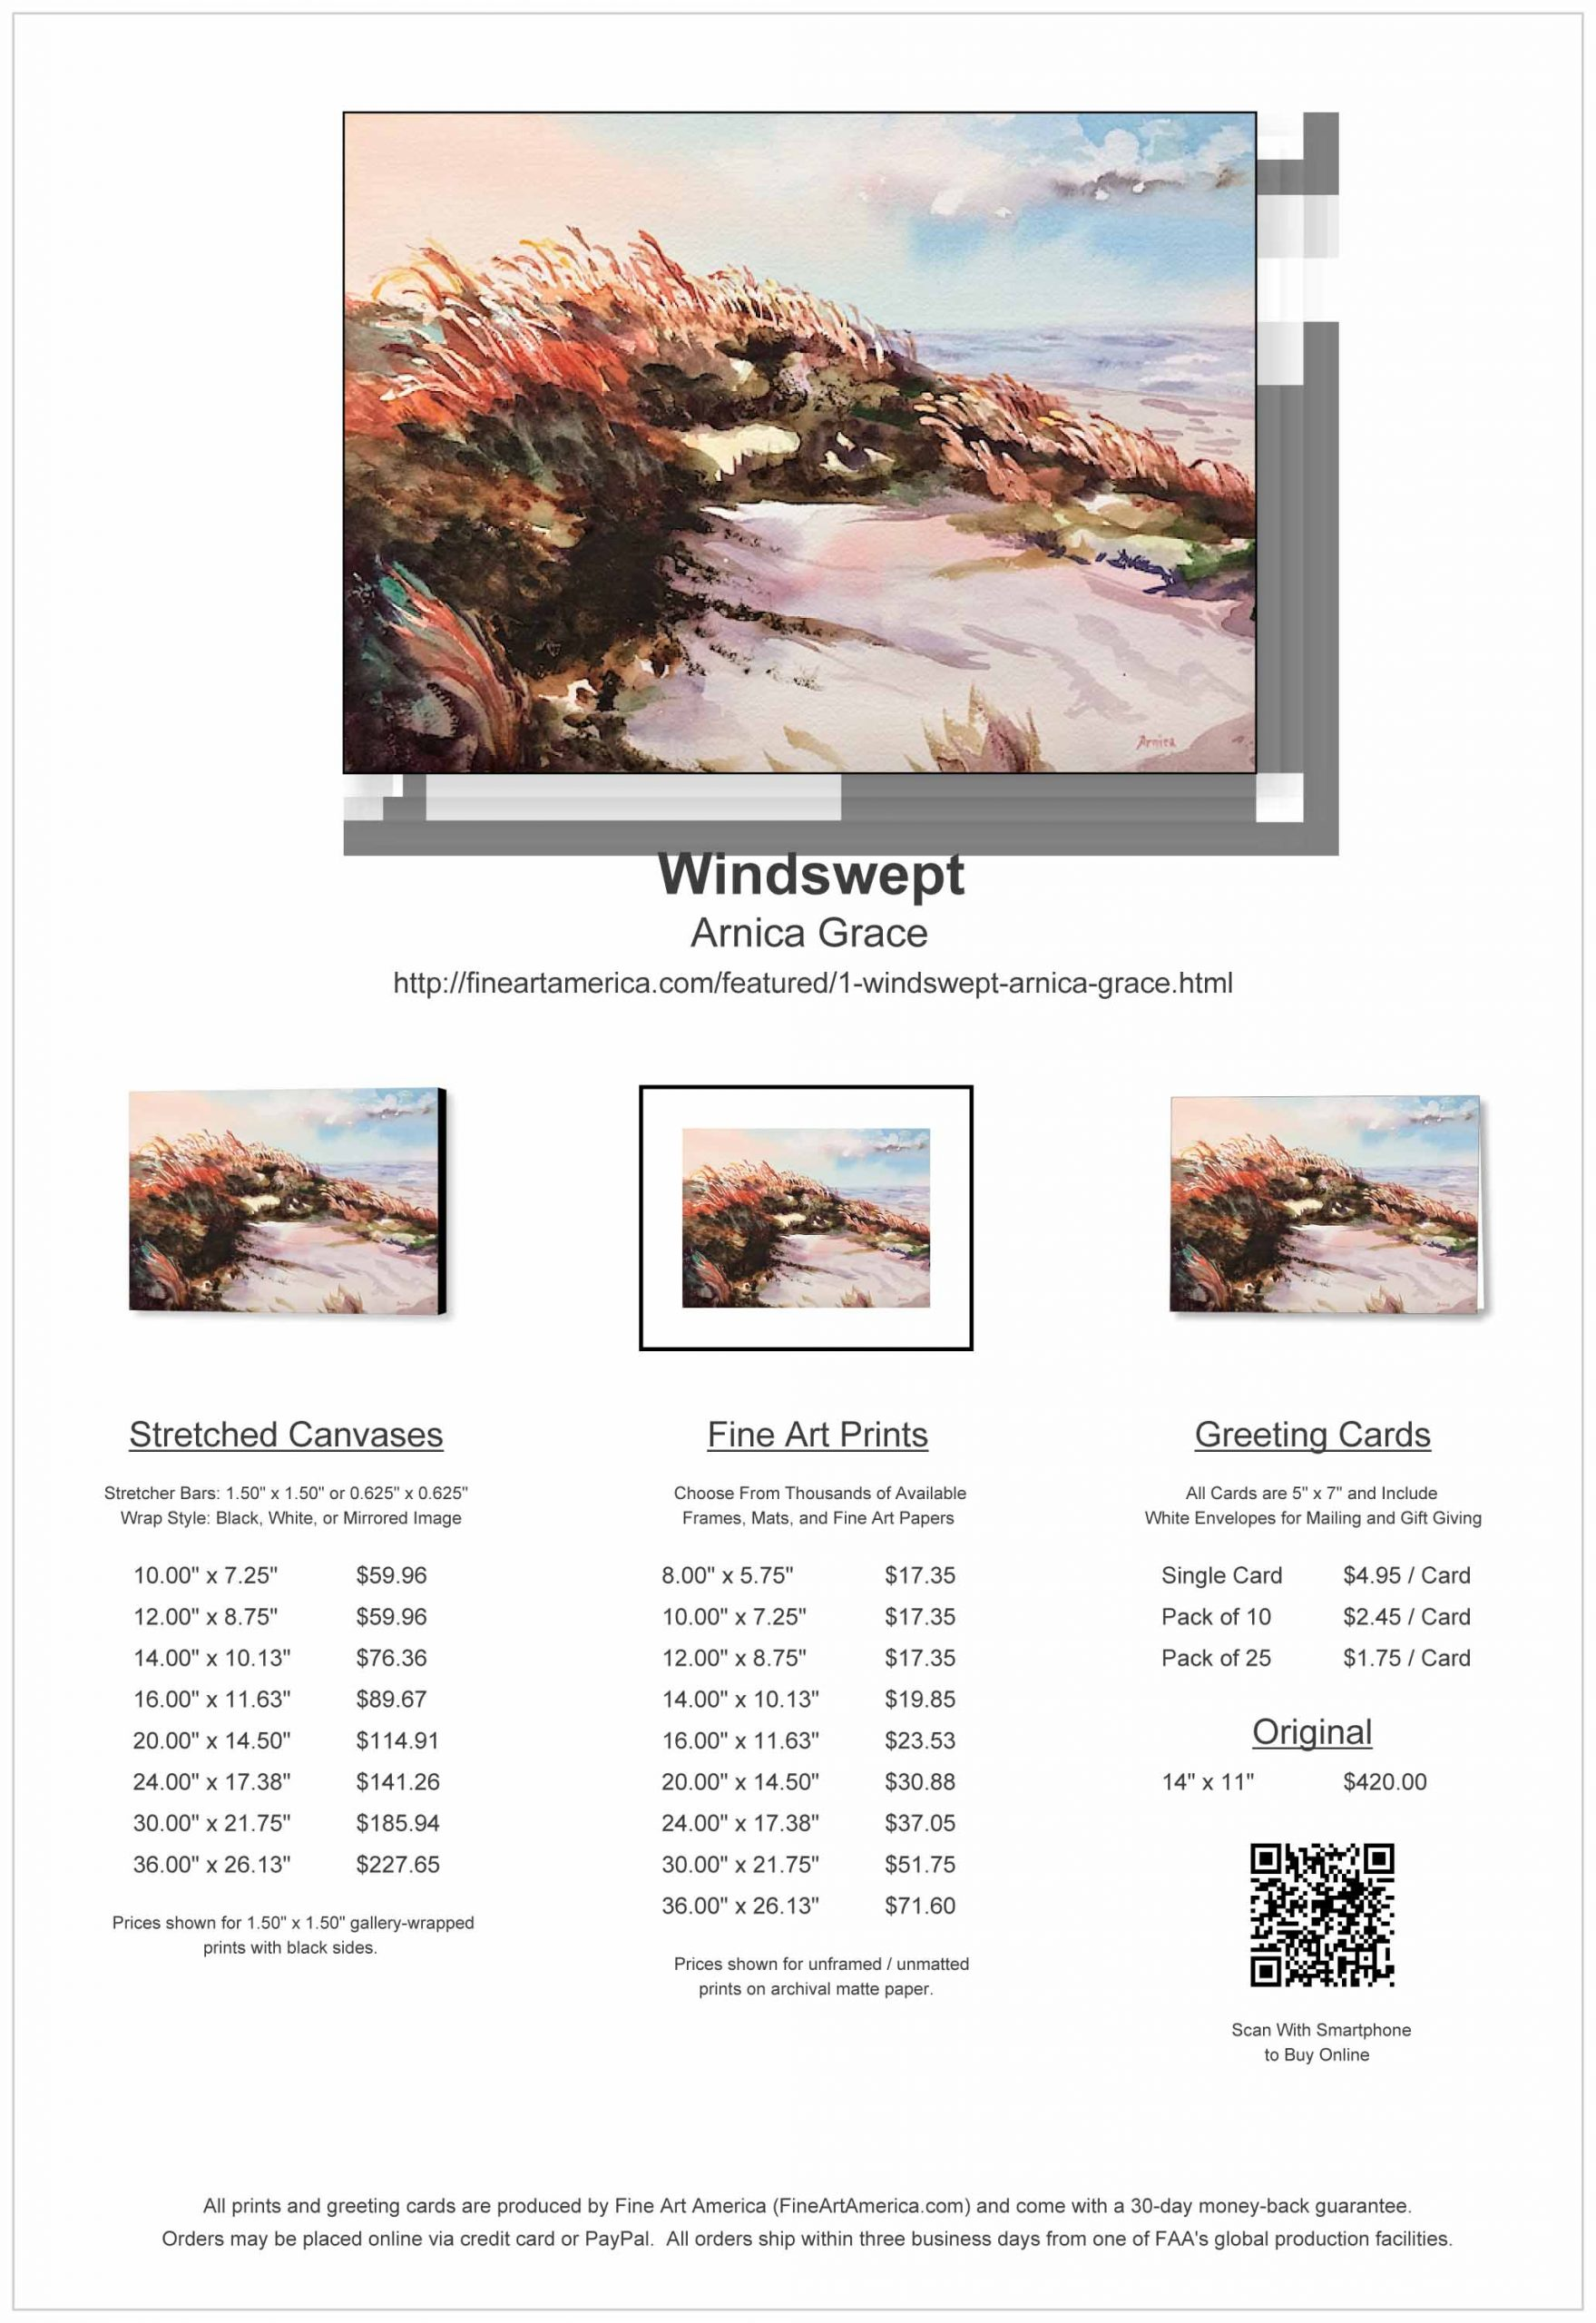 'Windswept' Price Sheet